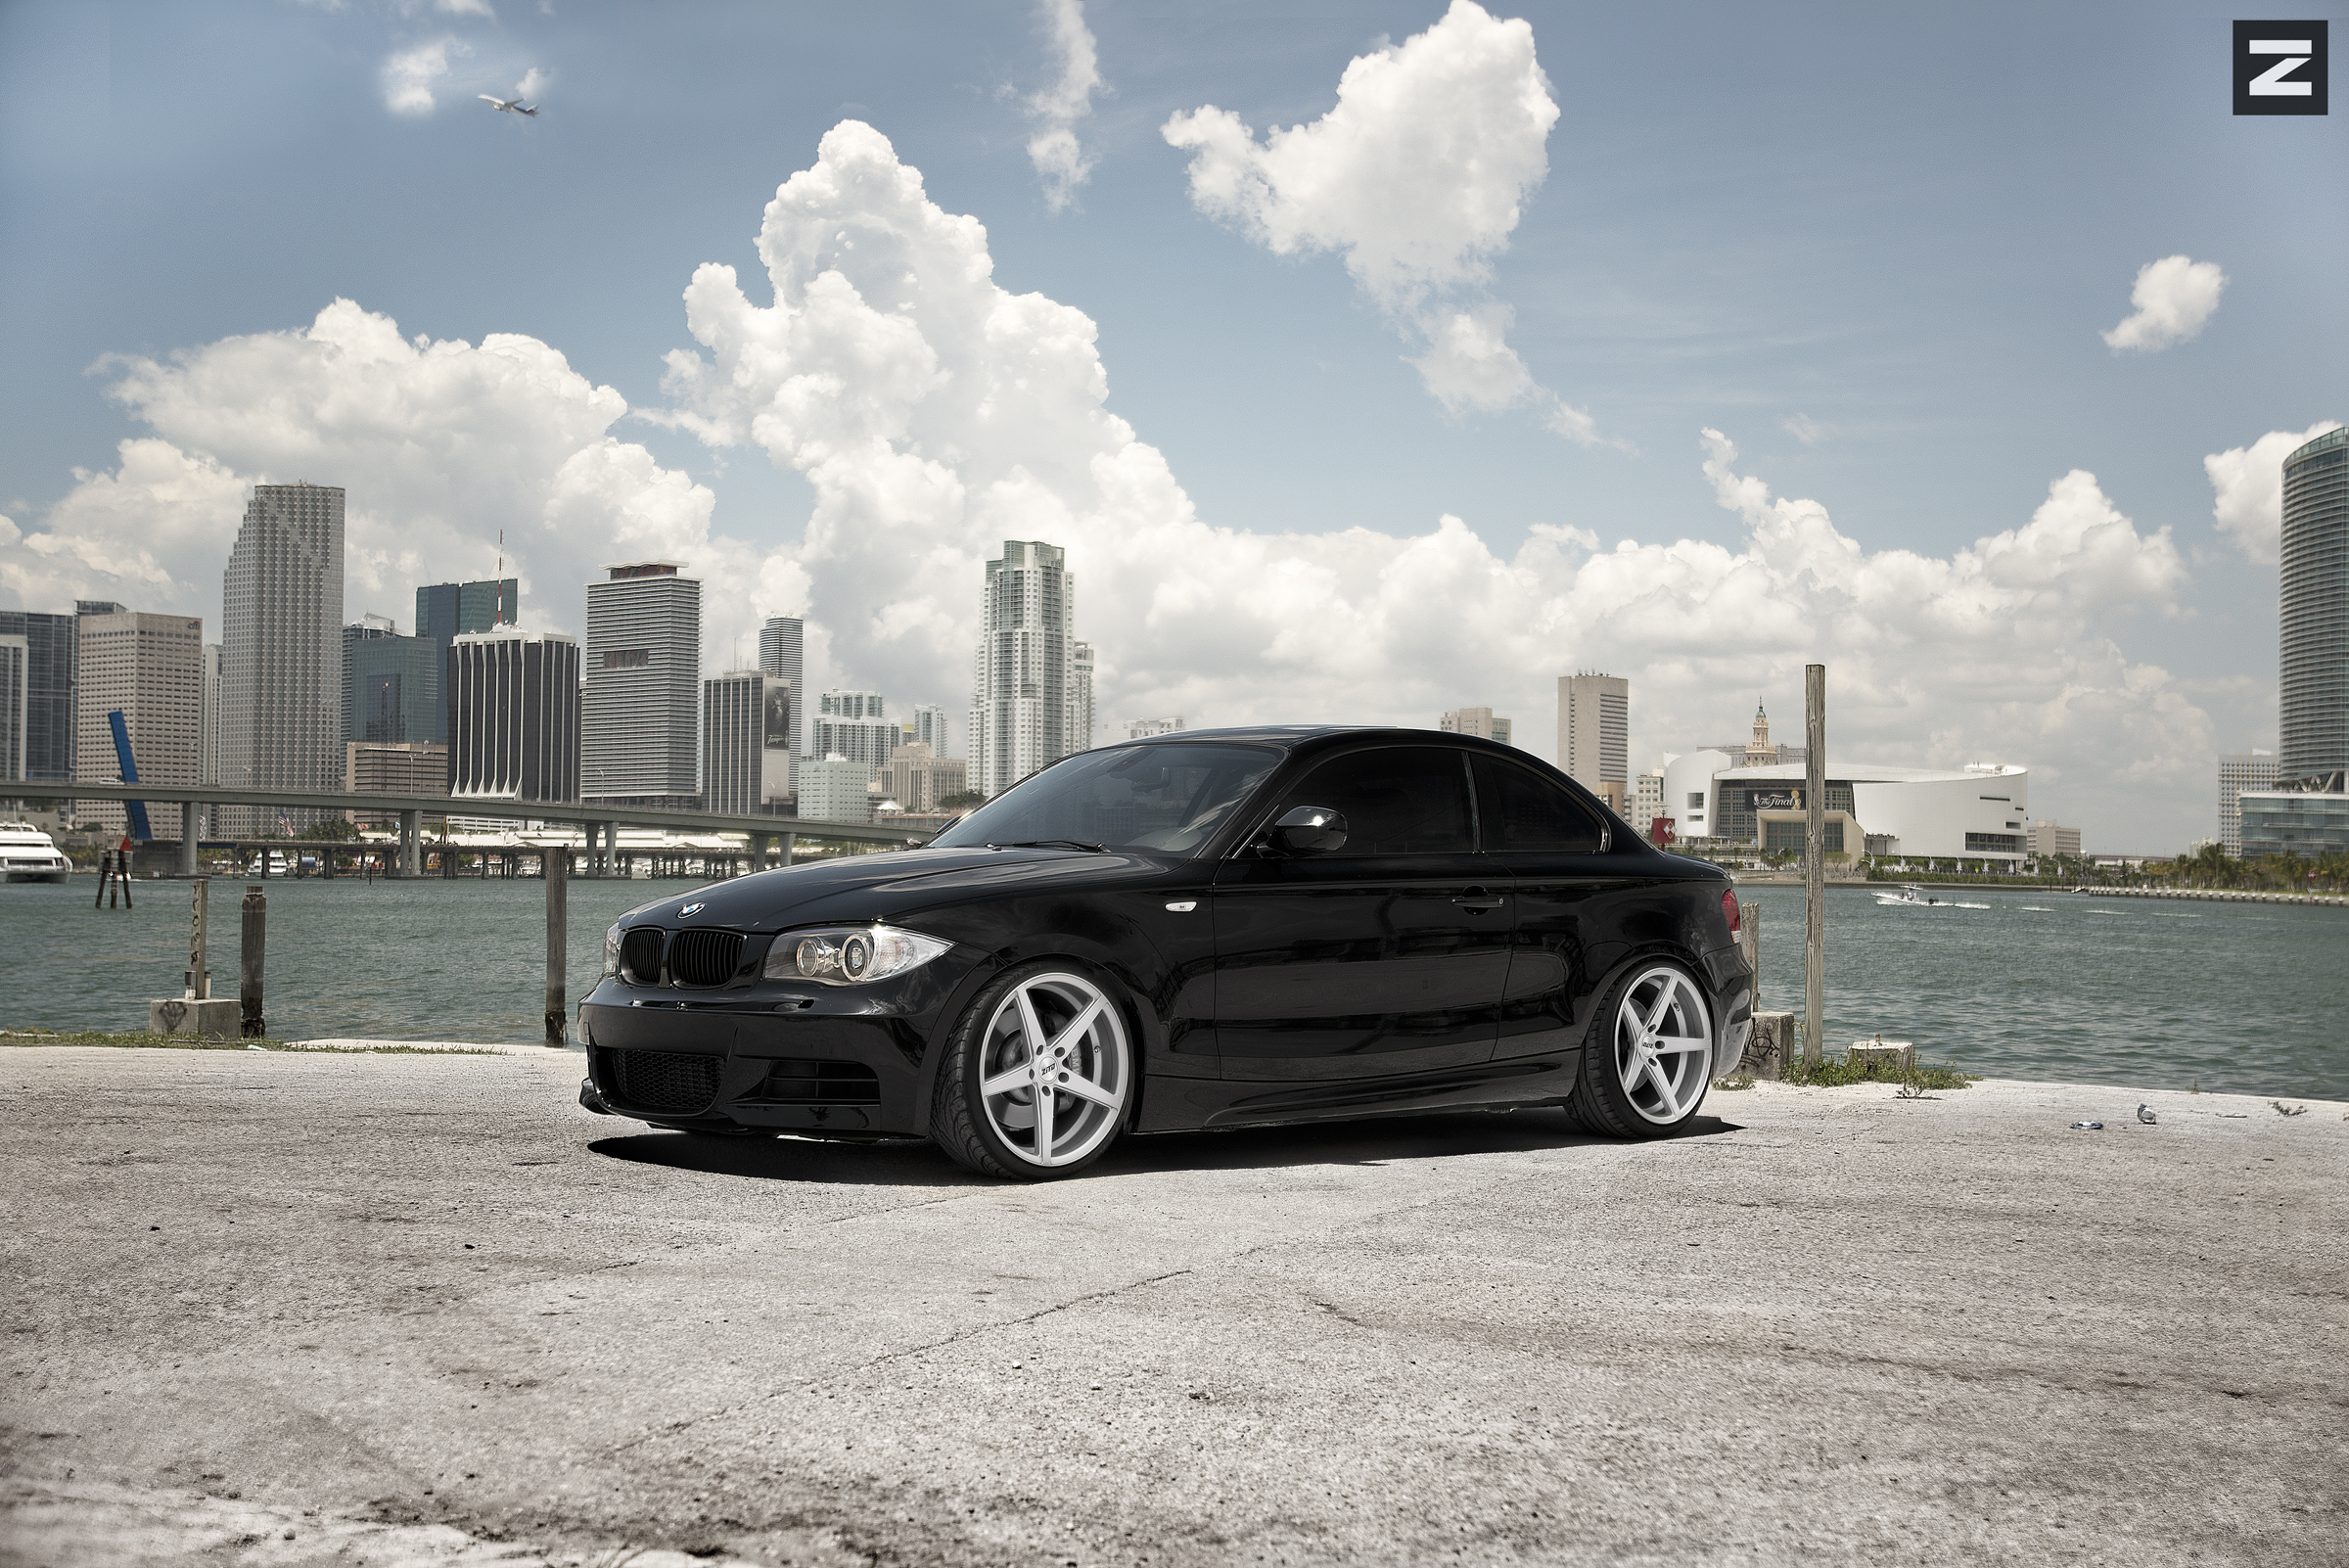 BMW E82 135i Black ZS02